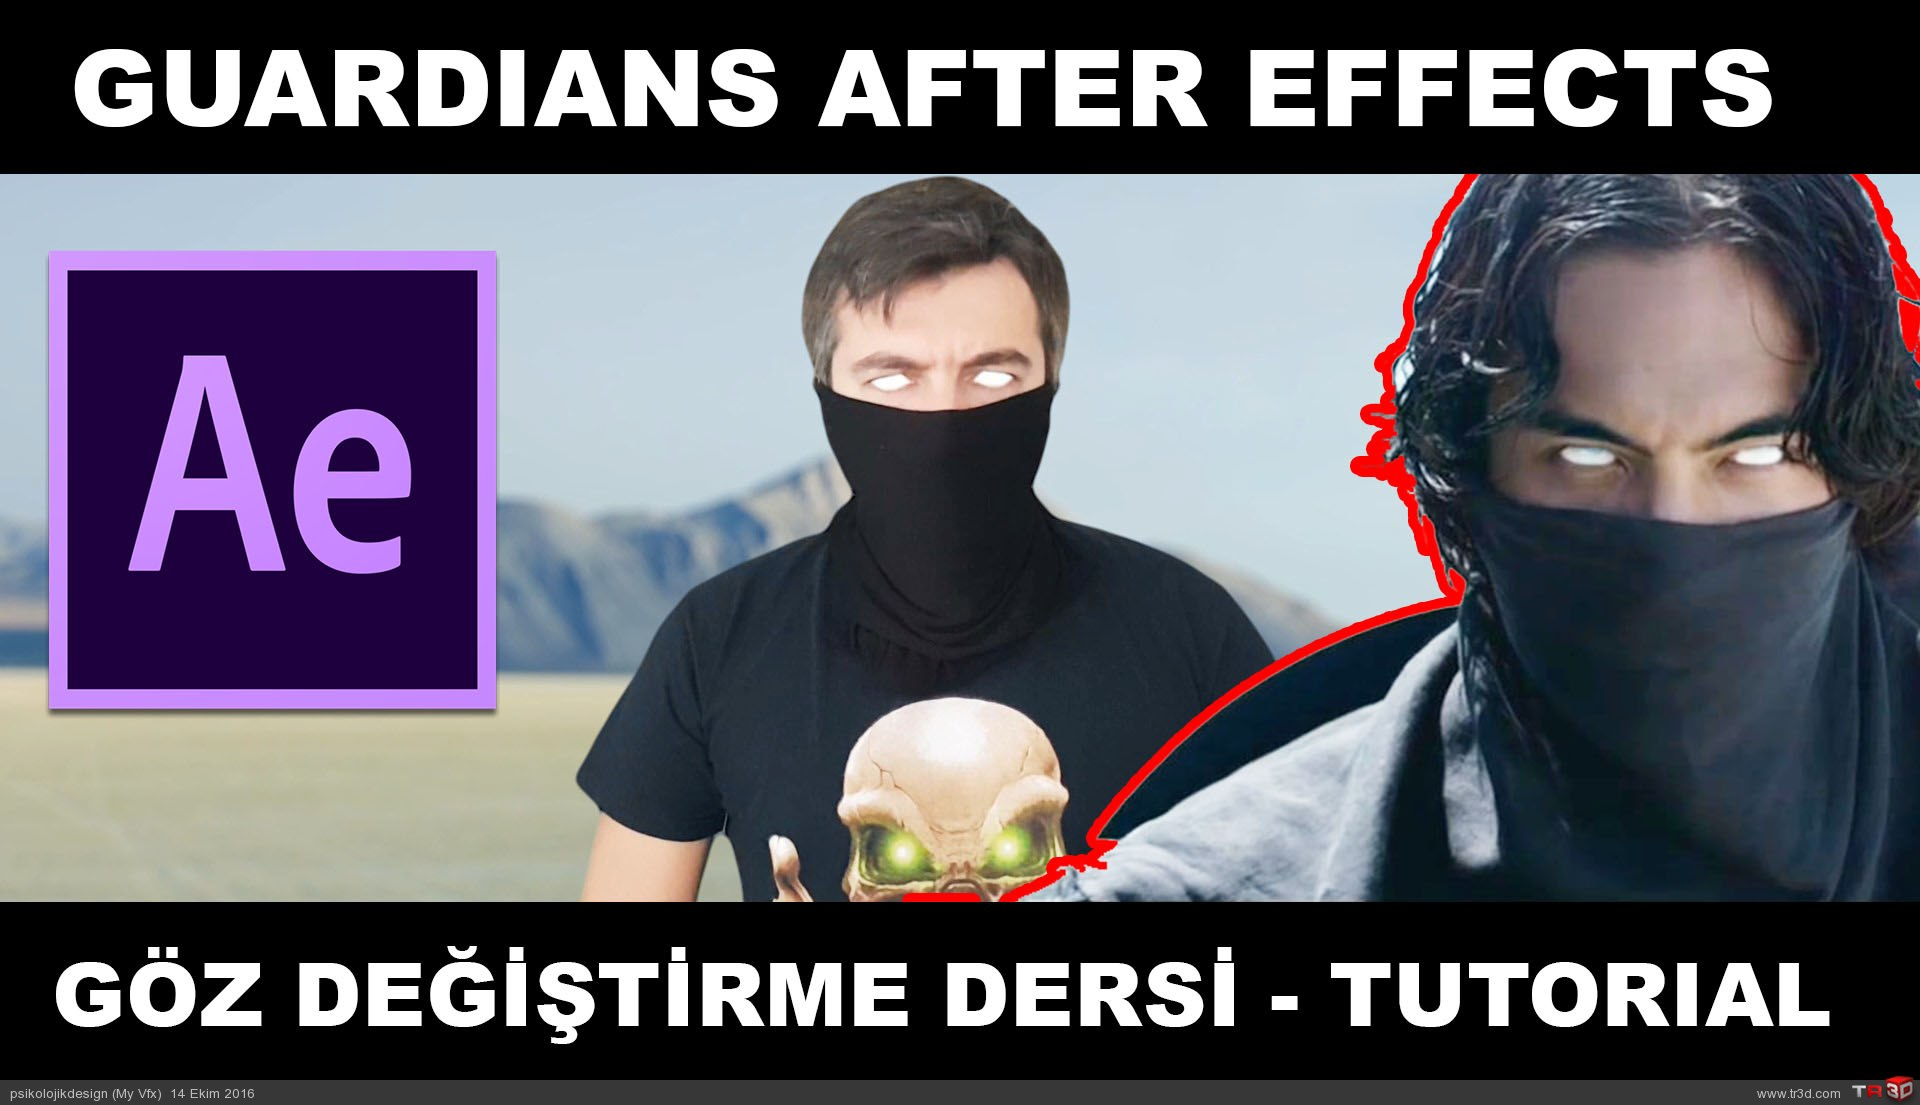 Guardians After Effects Göz Değiştirme Dersi | Eye Changing Tutorial